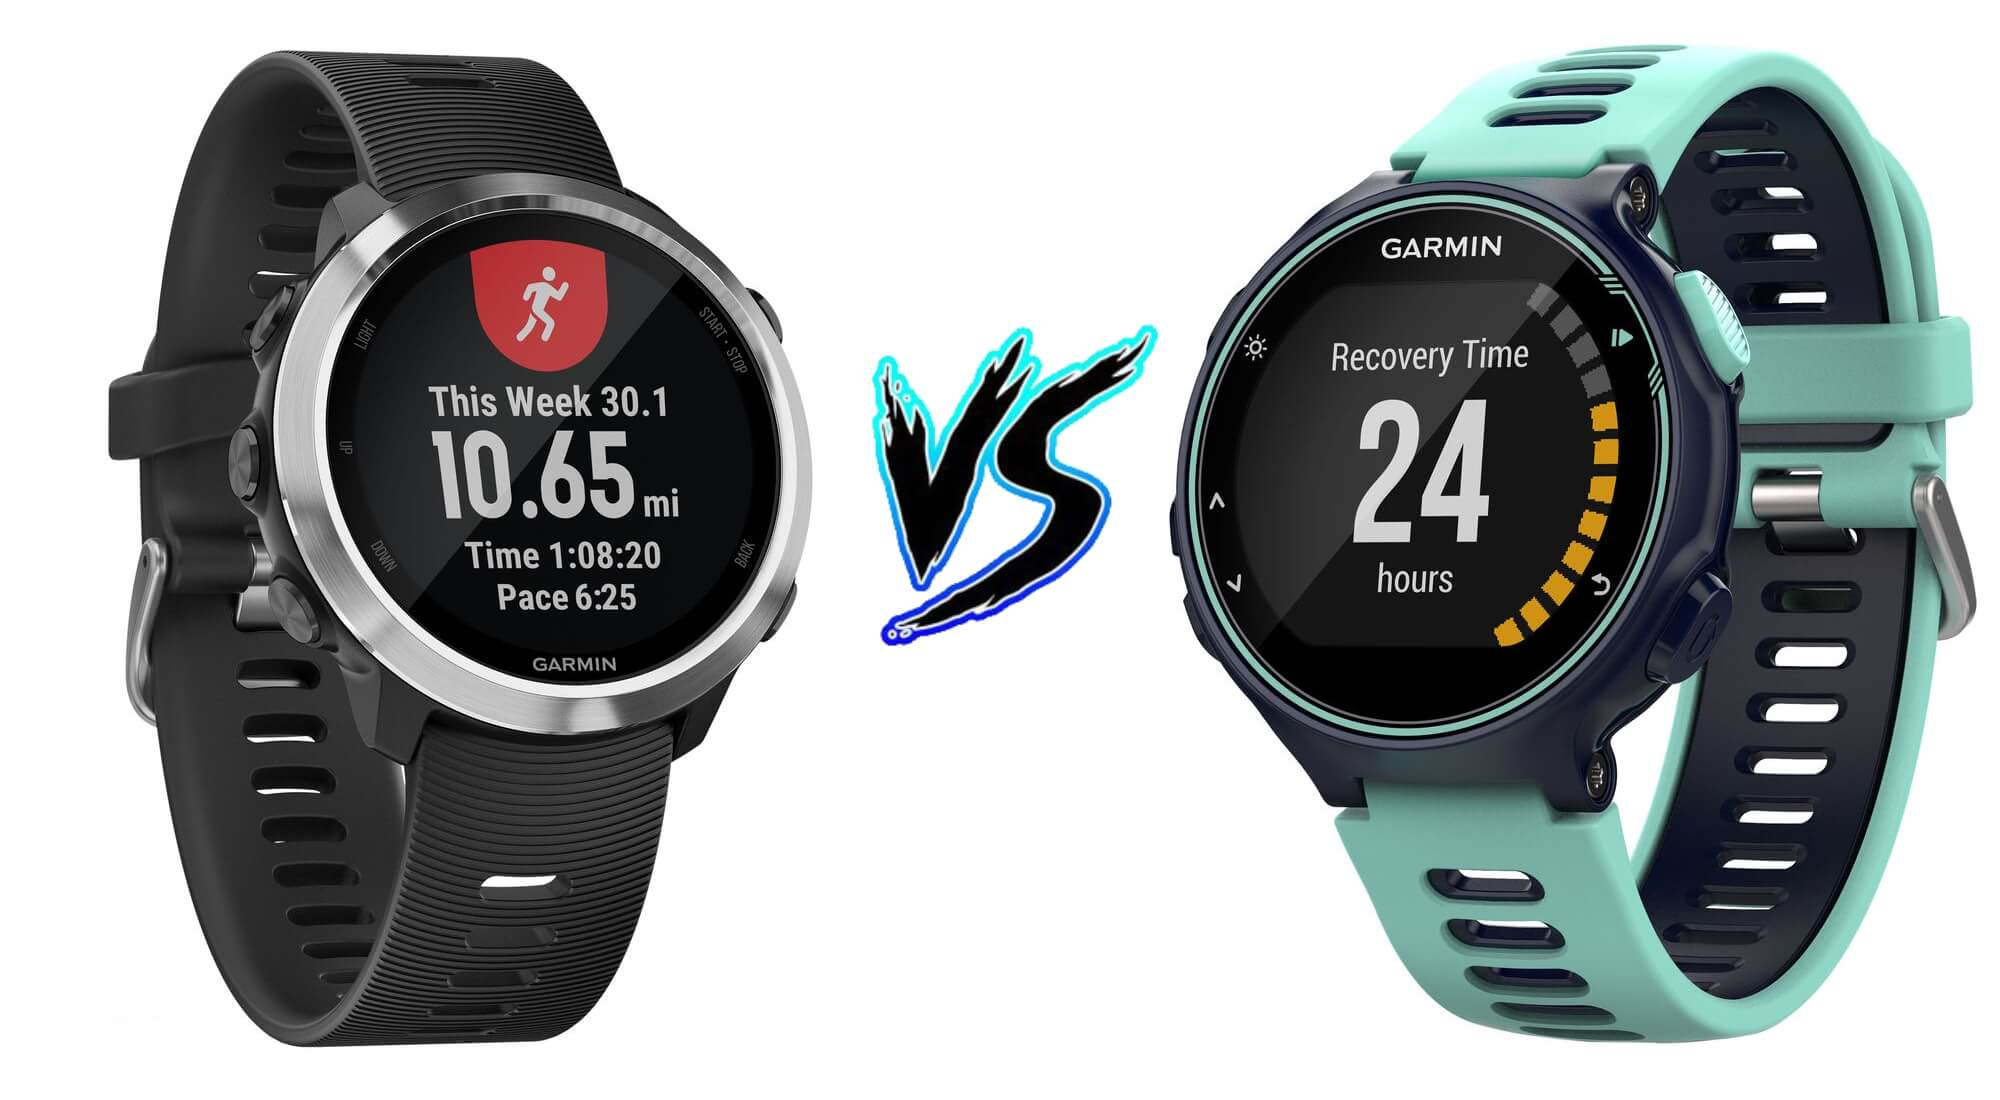 Garmin Forerunner 645 vs 735XT – Simple Product Comparison